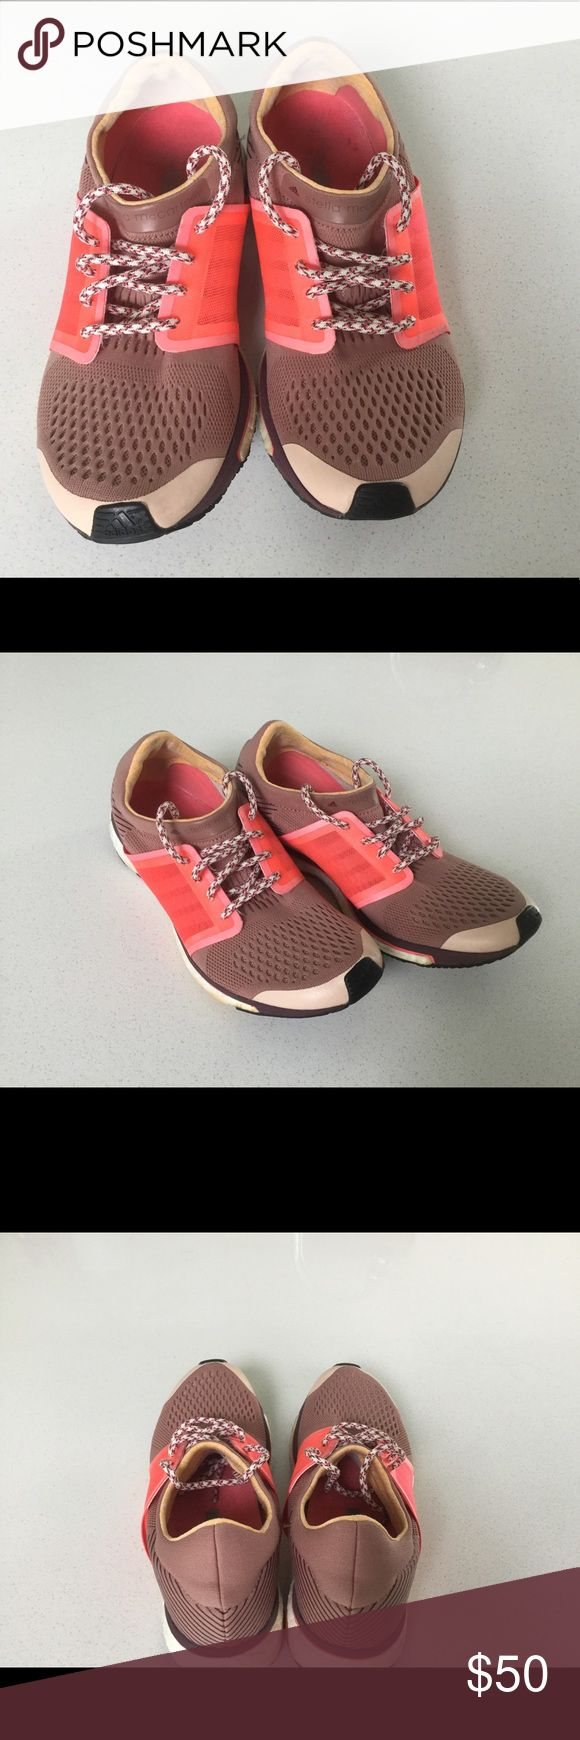 Adidas by Stella McCartney women's sneakers SZ 7.5 Adidas by Stella McCartney sneakers in clay pink (mauve), deep wine, and bright coral.  Women's size 7.5 with minimal wear. Adidas by Stella McCartney Shoes Athletic Shoes